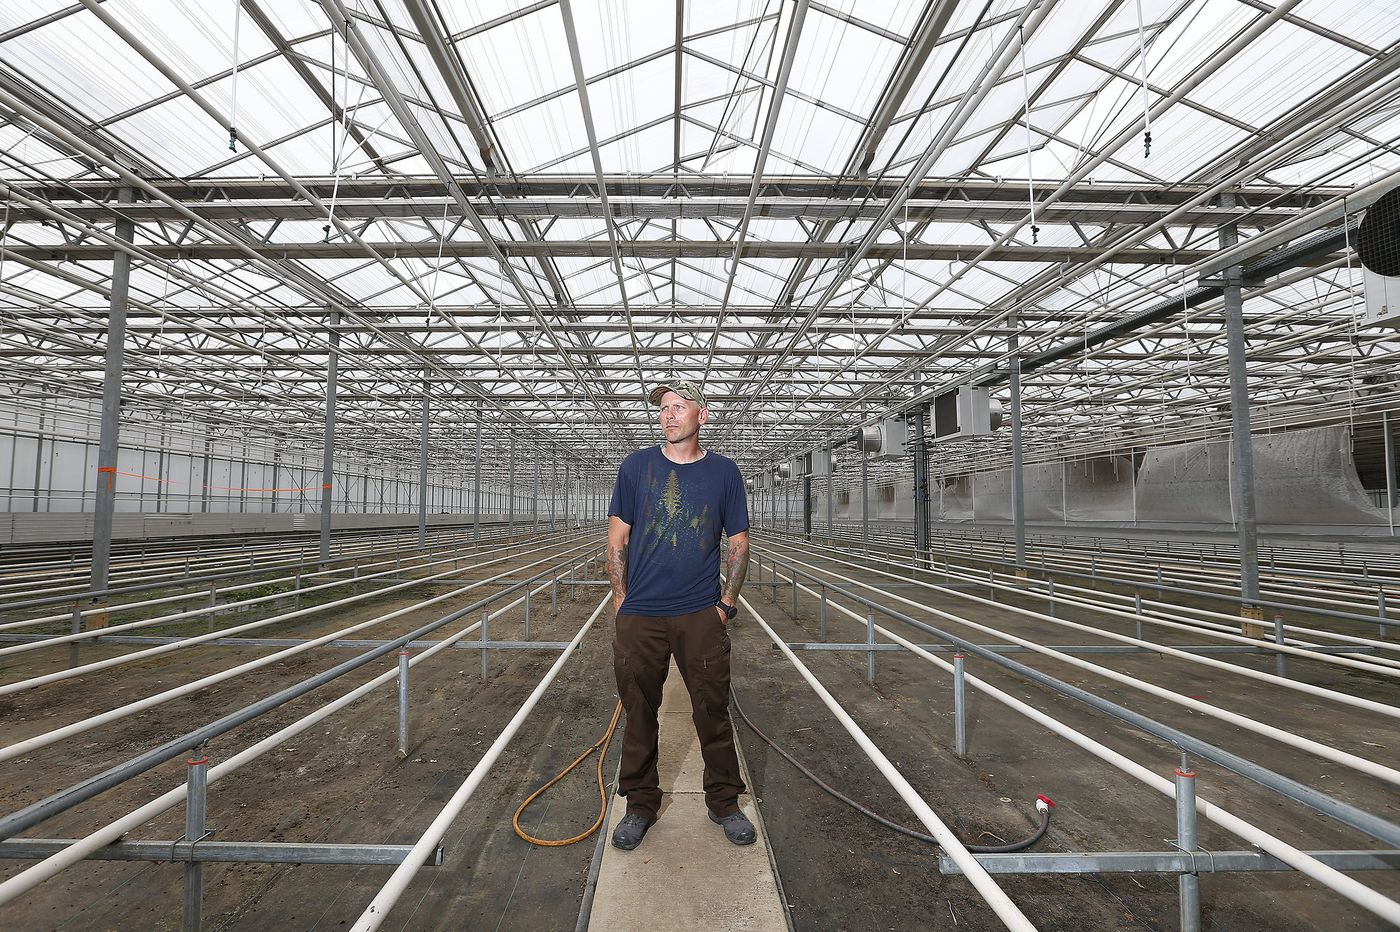 Weed would replace orchids in gigantic South Jersey greenhouse as demand for marijuana jumps